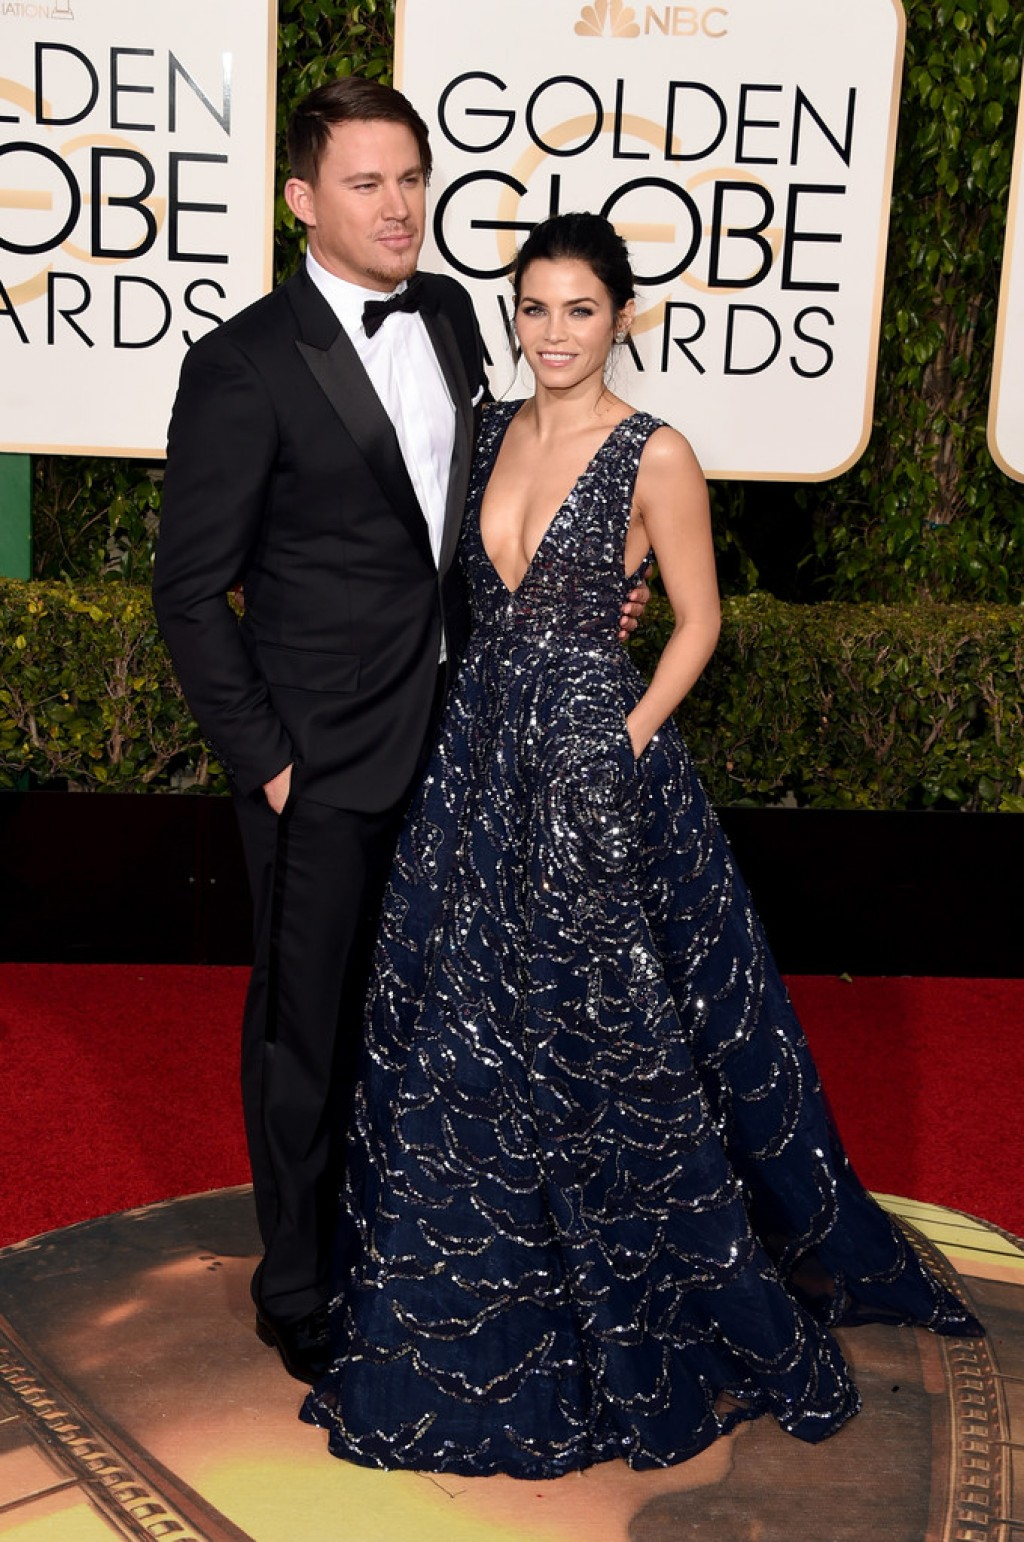 2016-Golden-Globes-Awards-Jenna-and-Channing-1024x1542